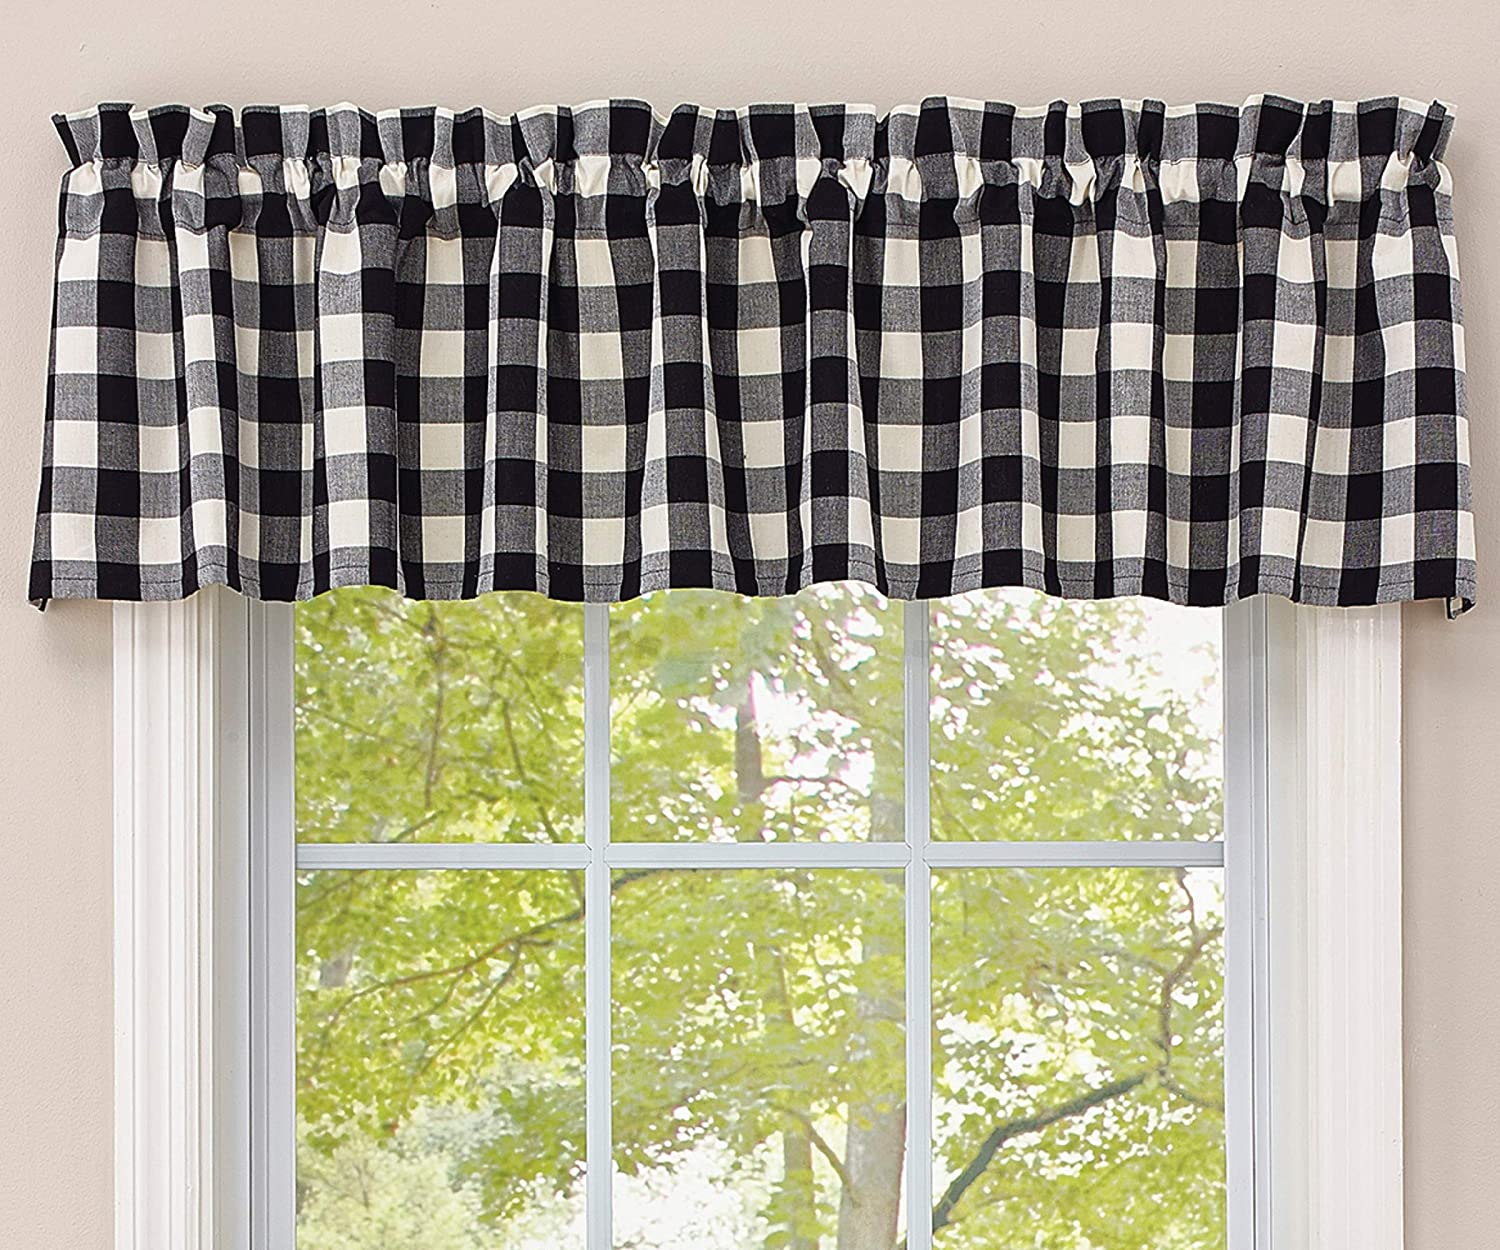 Park Designs Checkerboard Super-cheap Lined Black Valance Online limited product White -